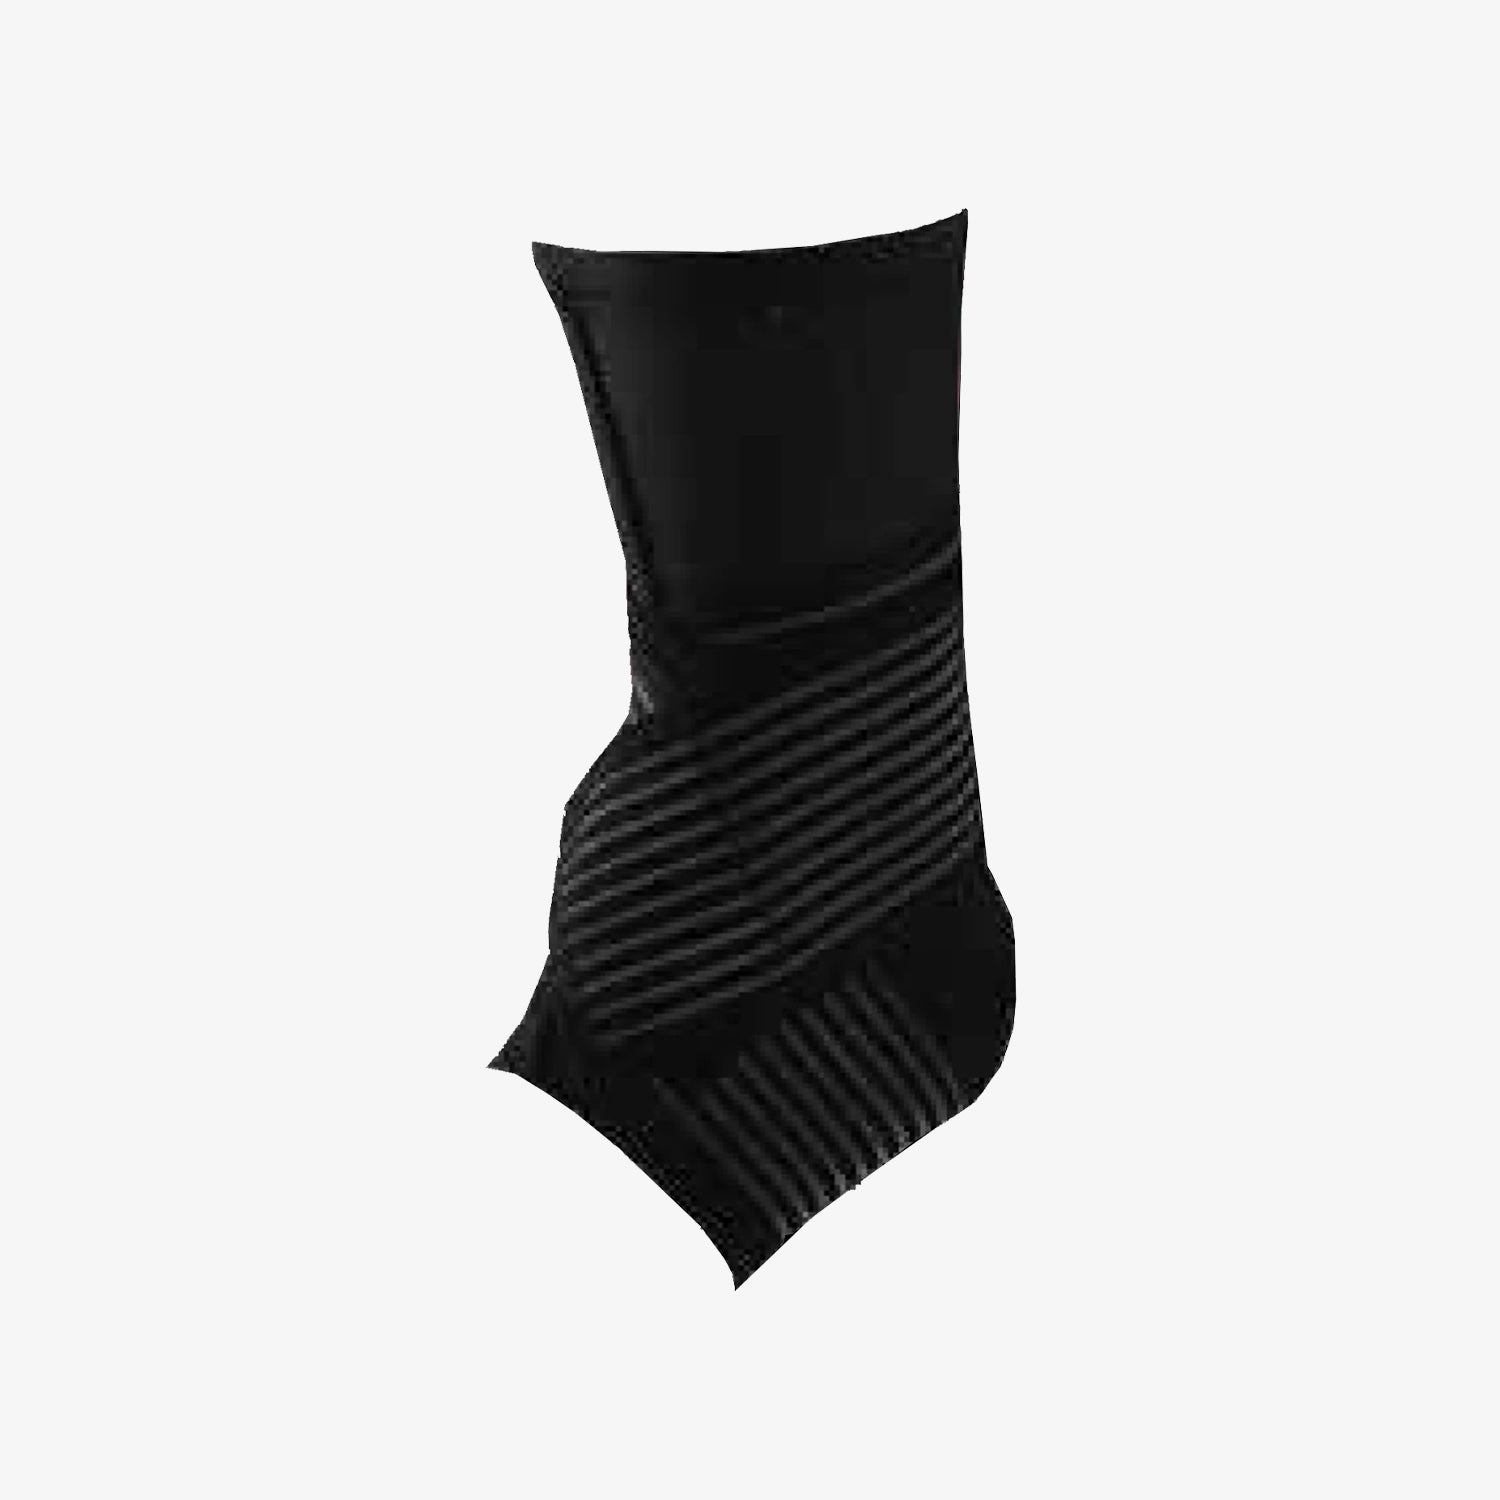 Ankle Support Large - Black